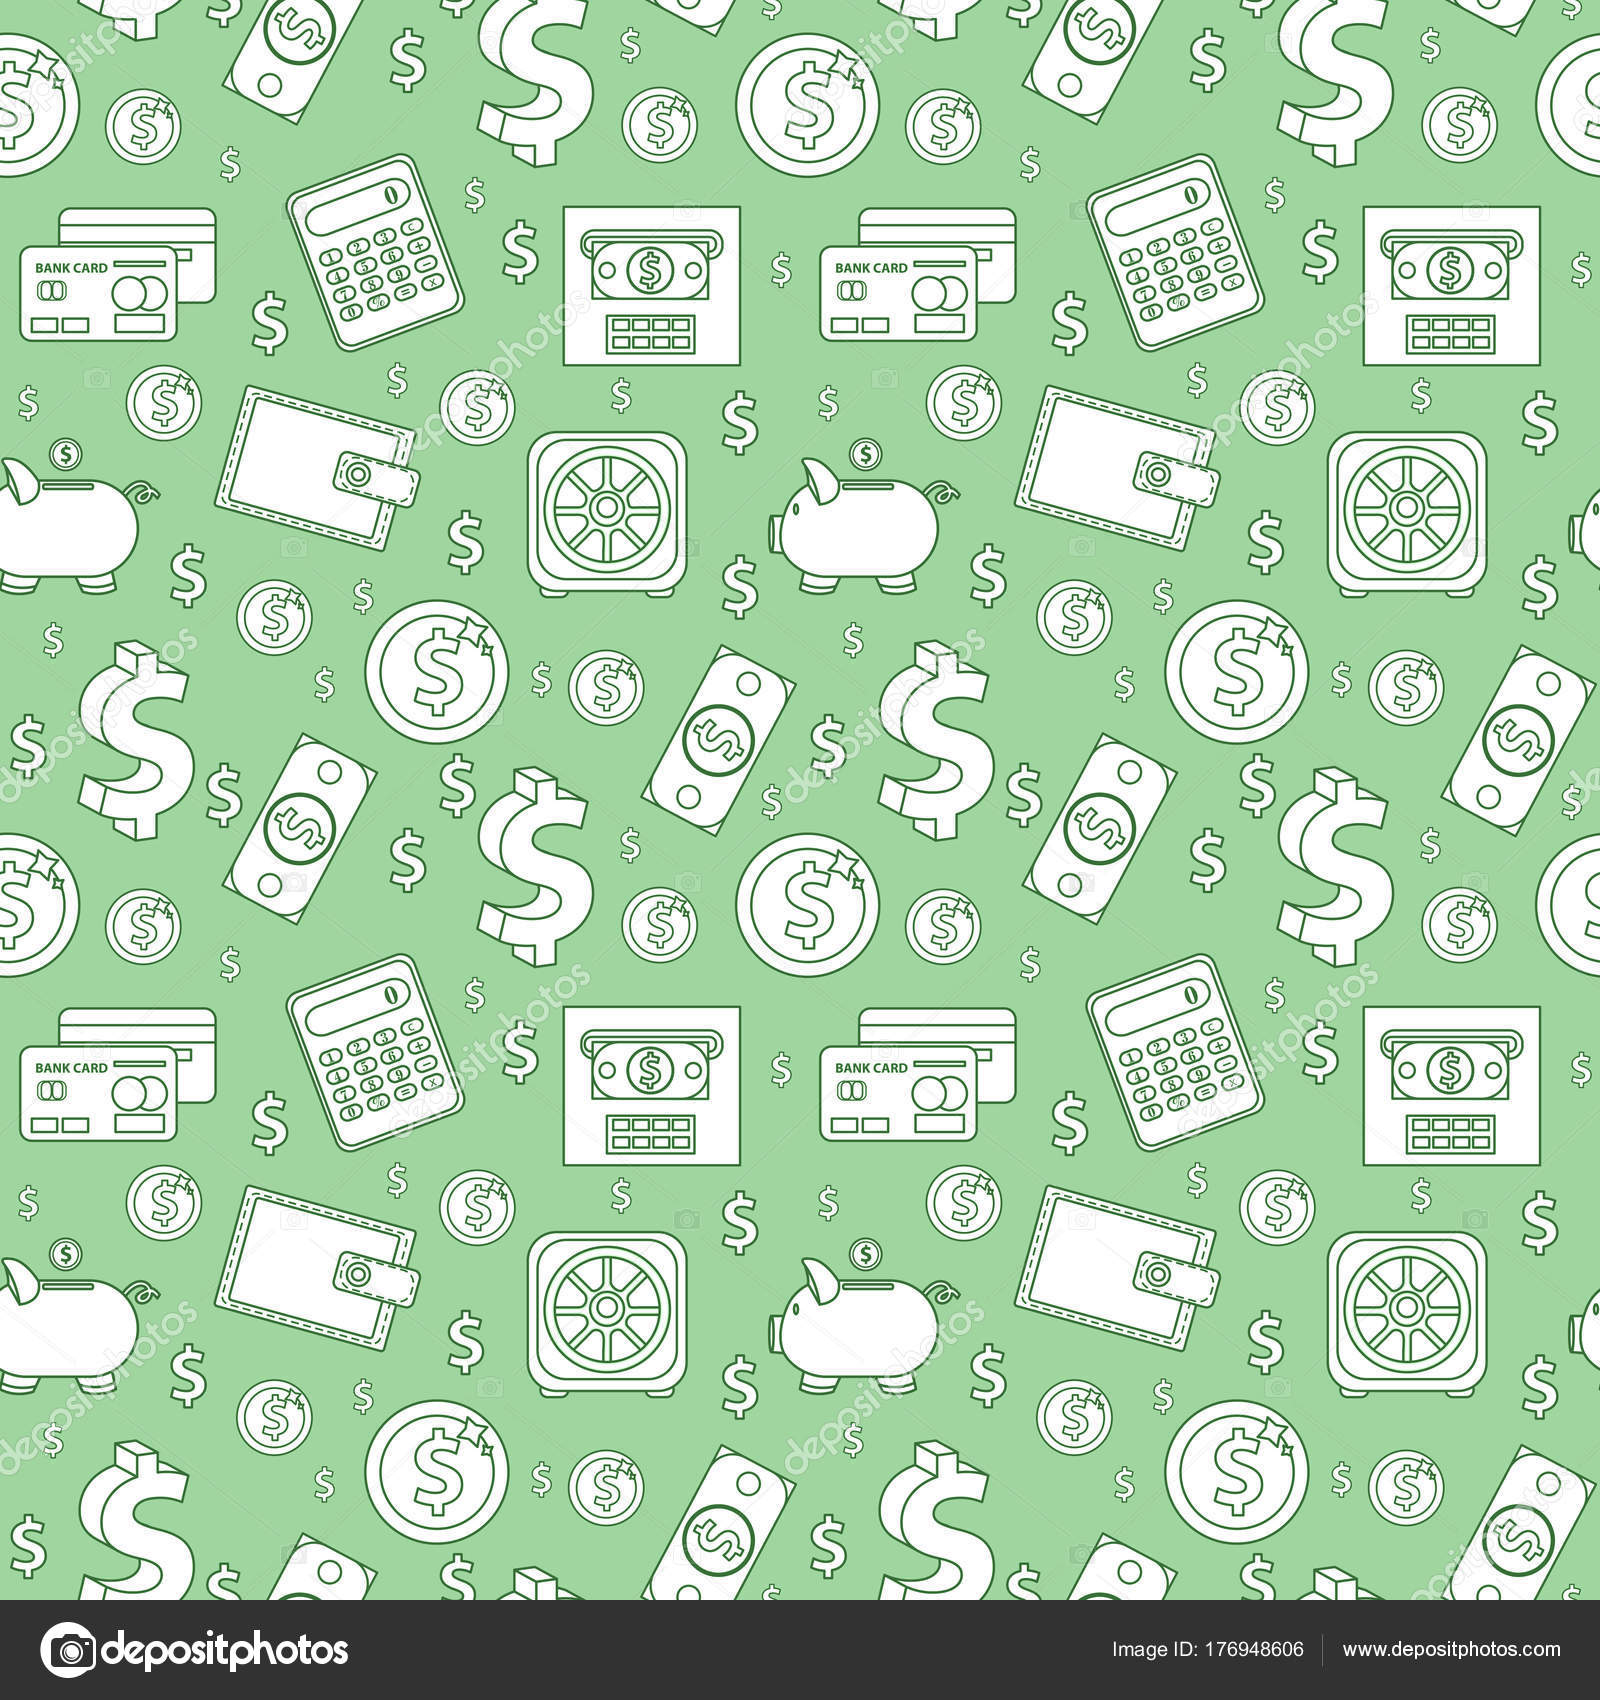 How To Calculate Wallpaper With Repeat Wallpaper Directory